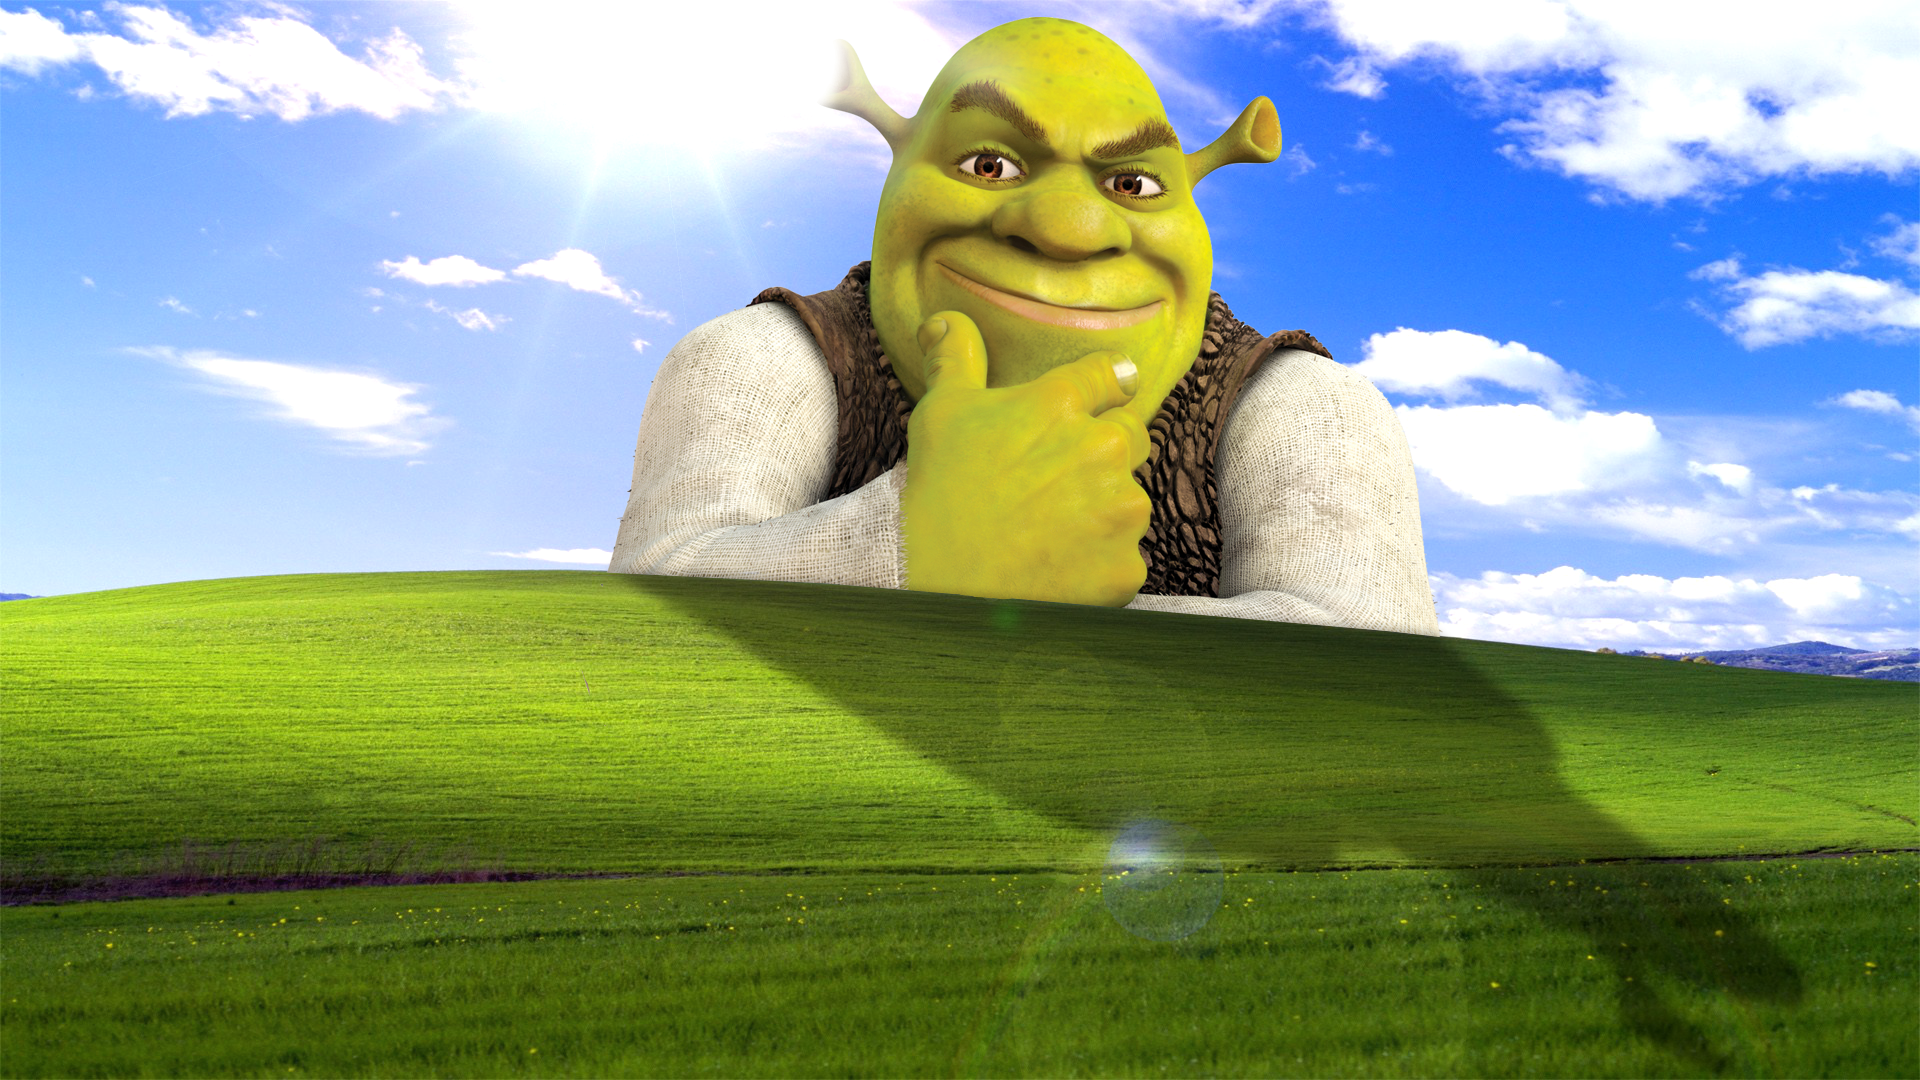 Meme Shrek Wallpaper In 2020 Meme Background Shrek Cartoon Smoke